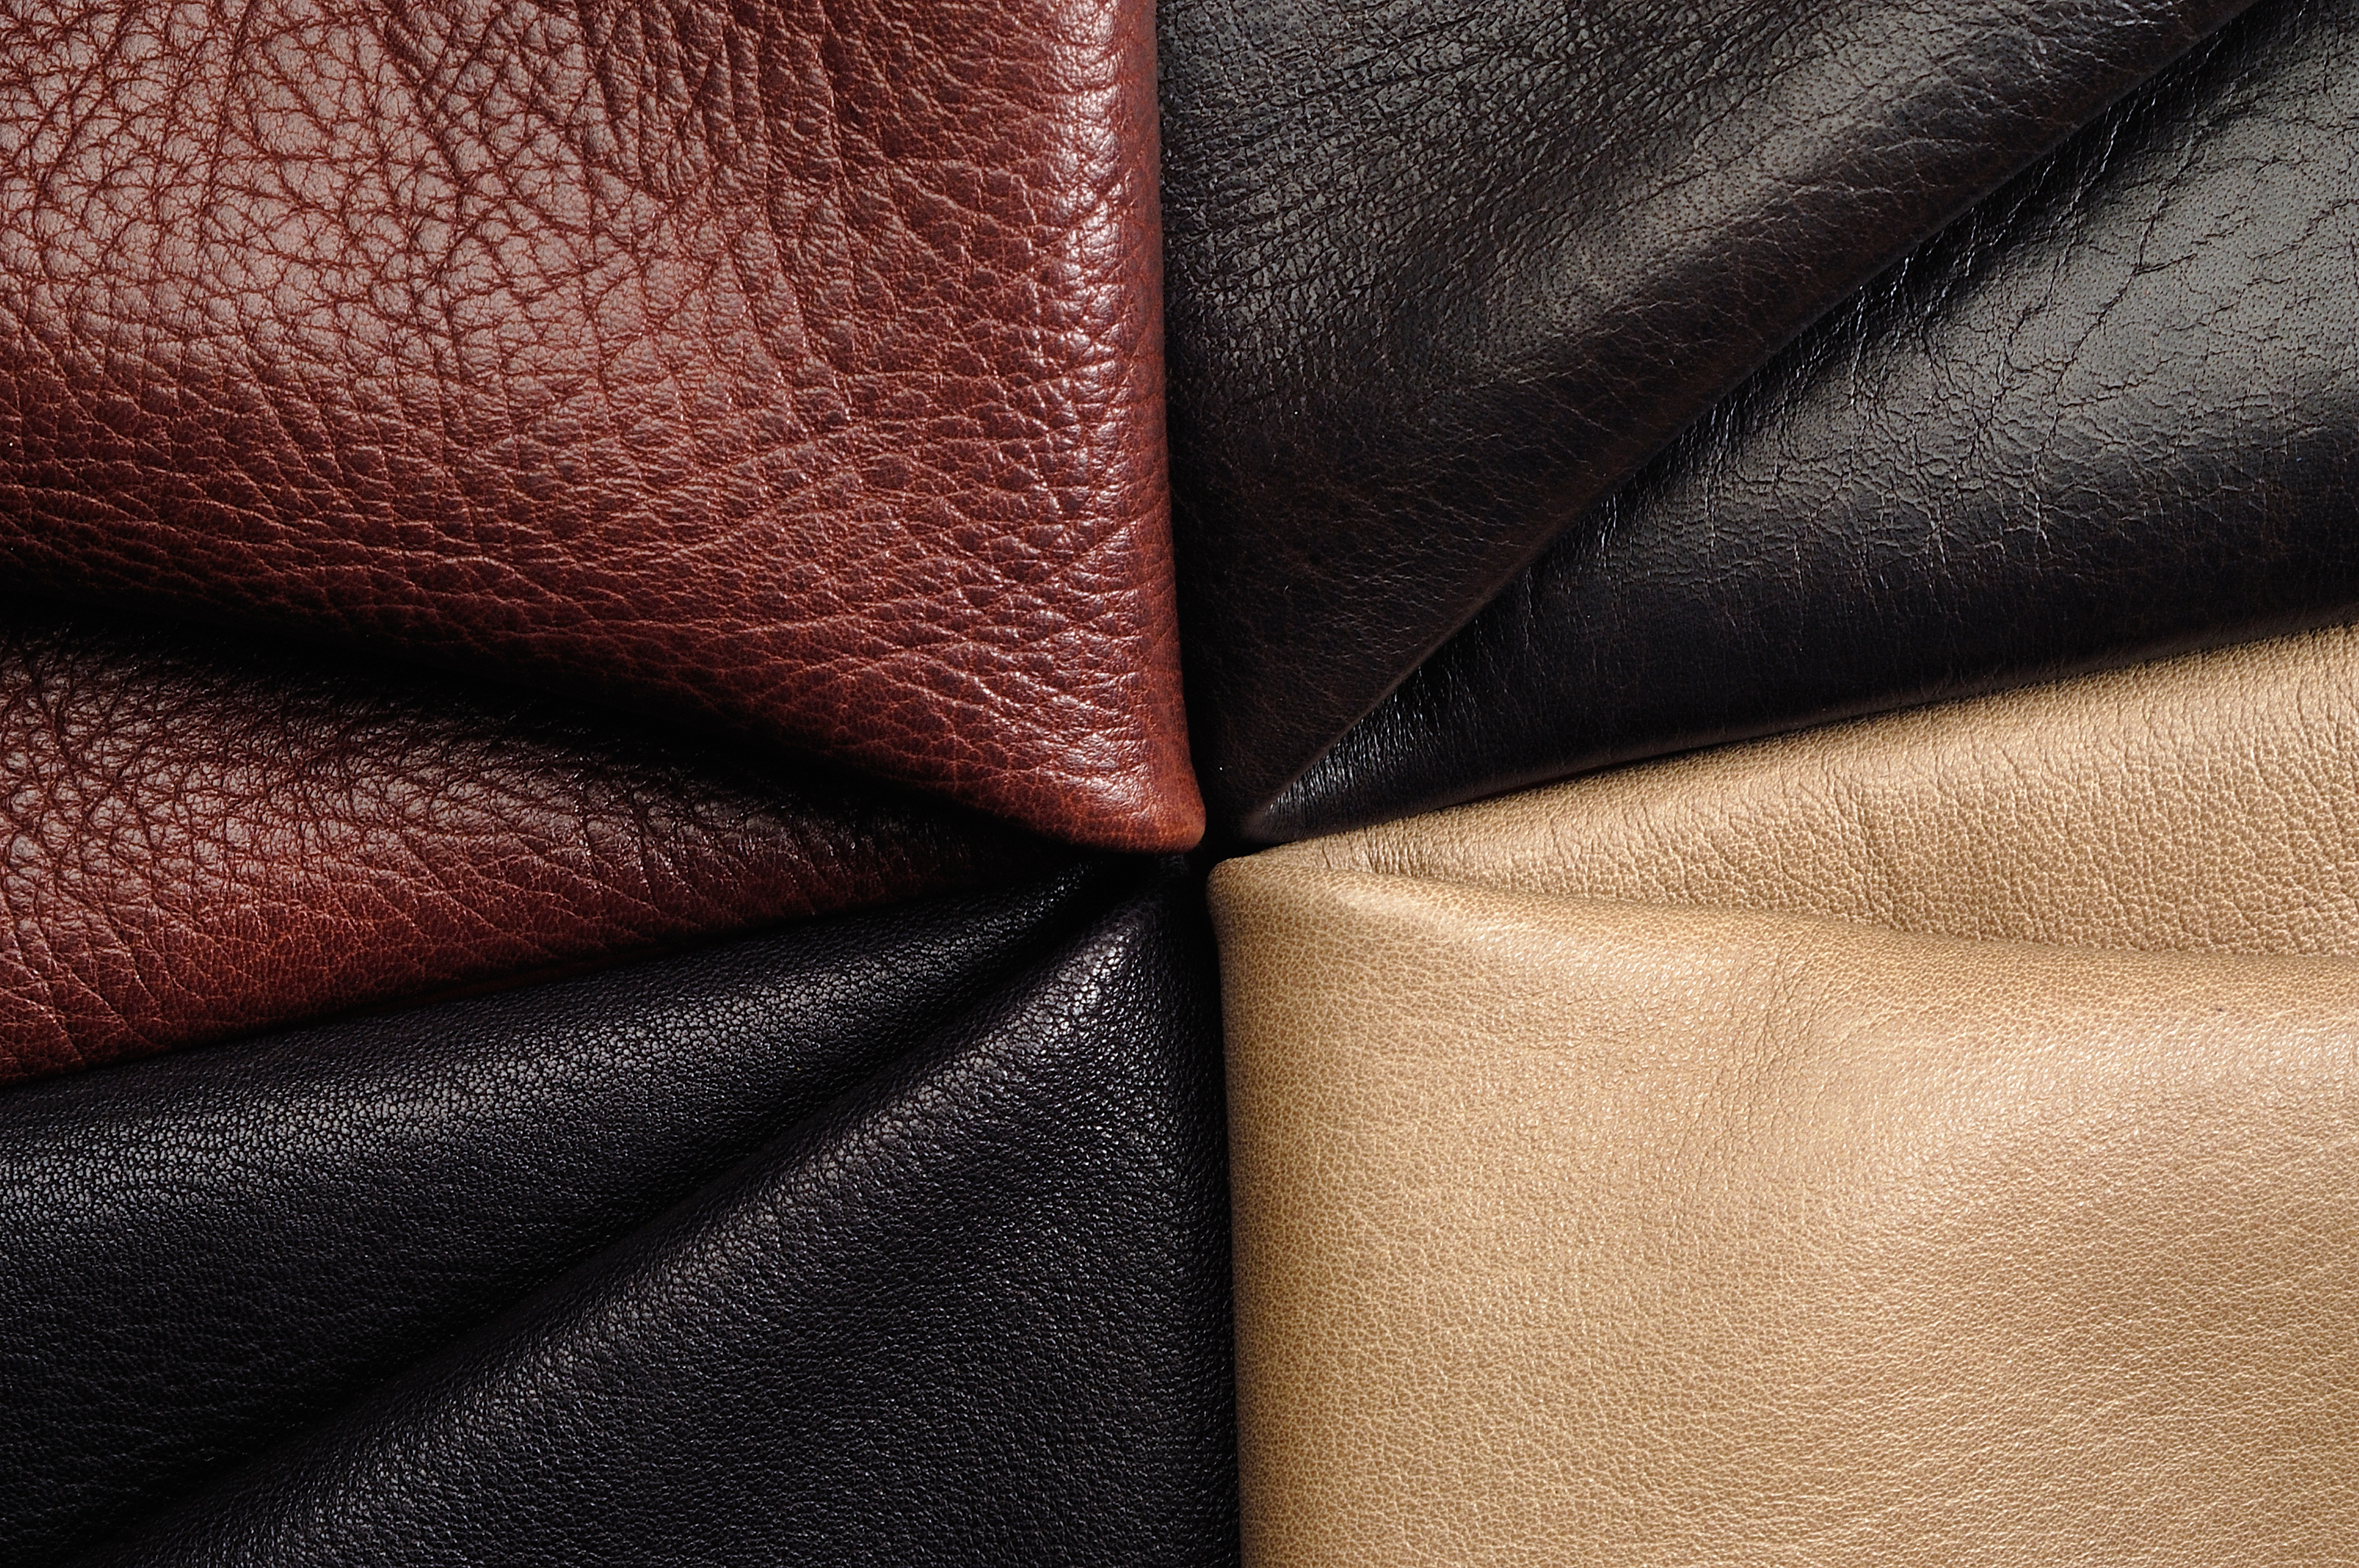 b505889cdd9e Leather processing is a true art that has been handed down for centuries.  Those worked by our artisans are the most prized and famous leathers in the  world, ...